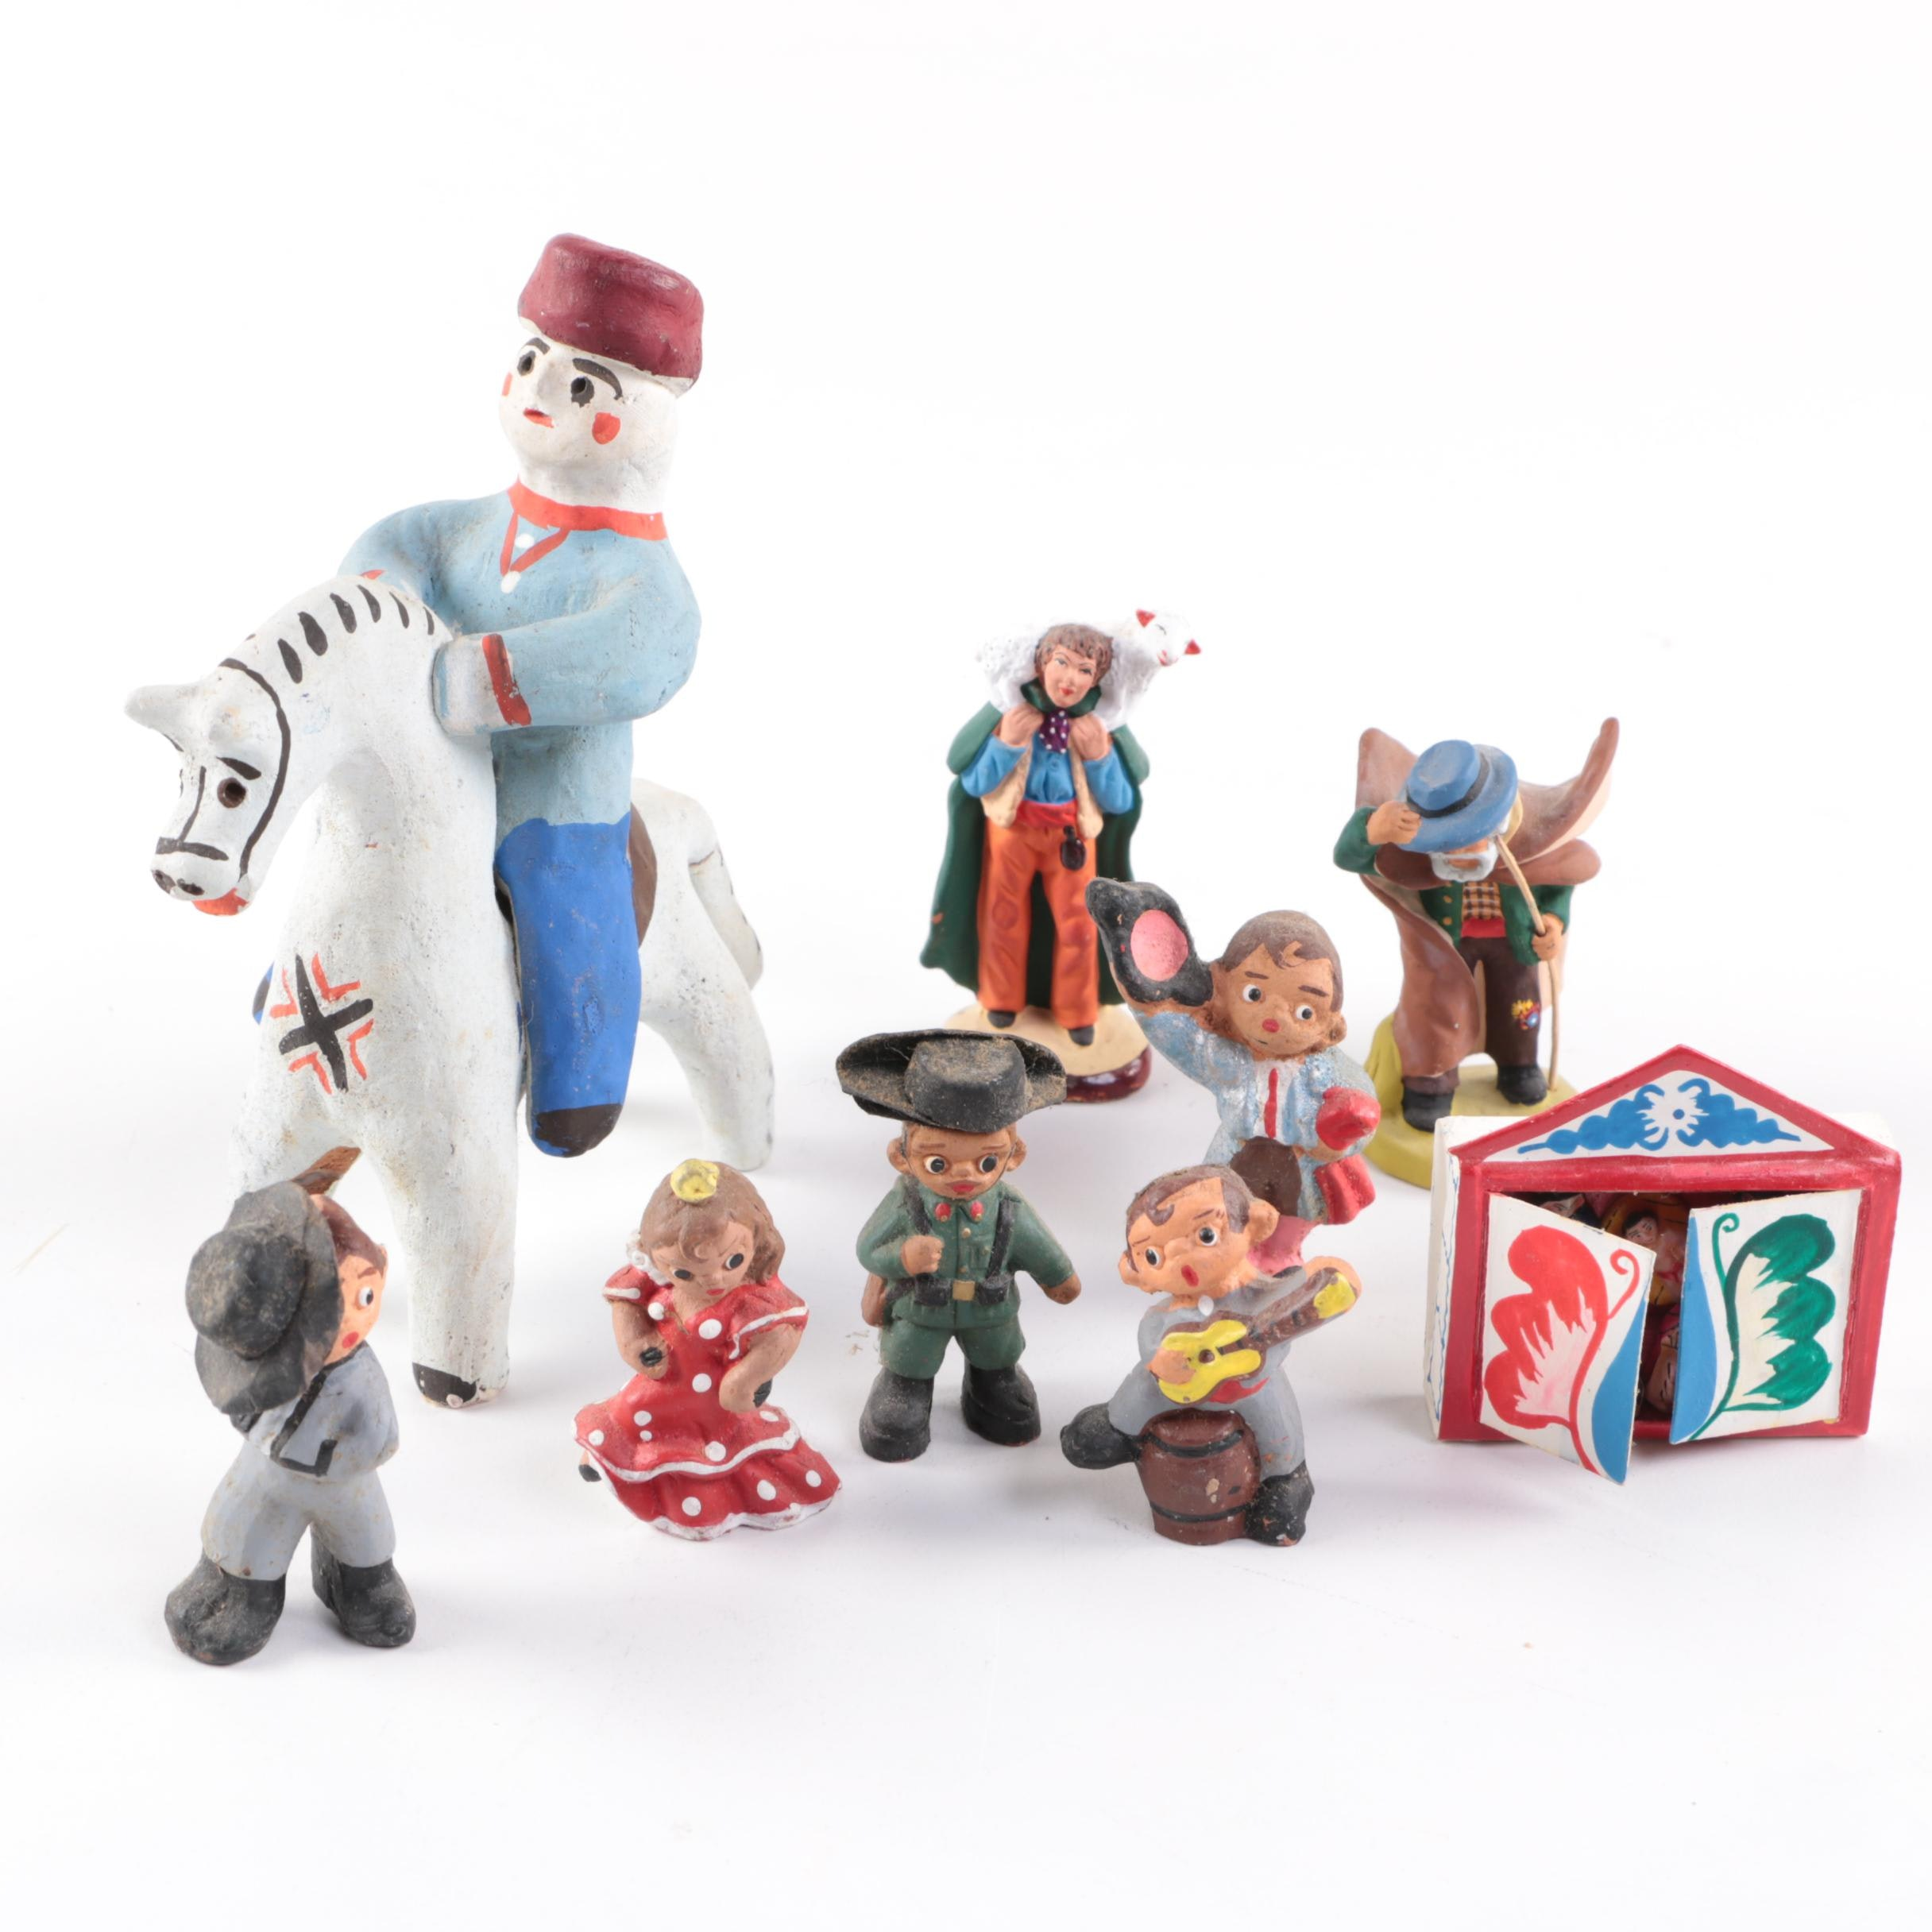 Vintage Wooden Toy Figurines and Nativity Set